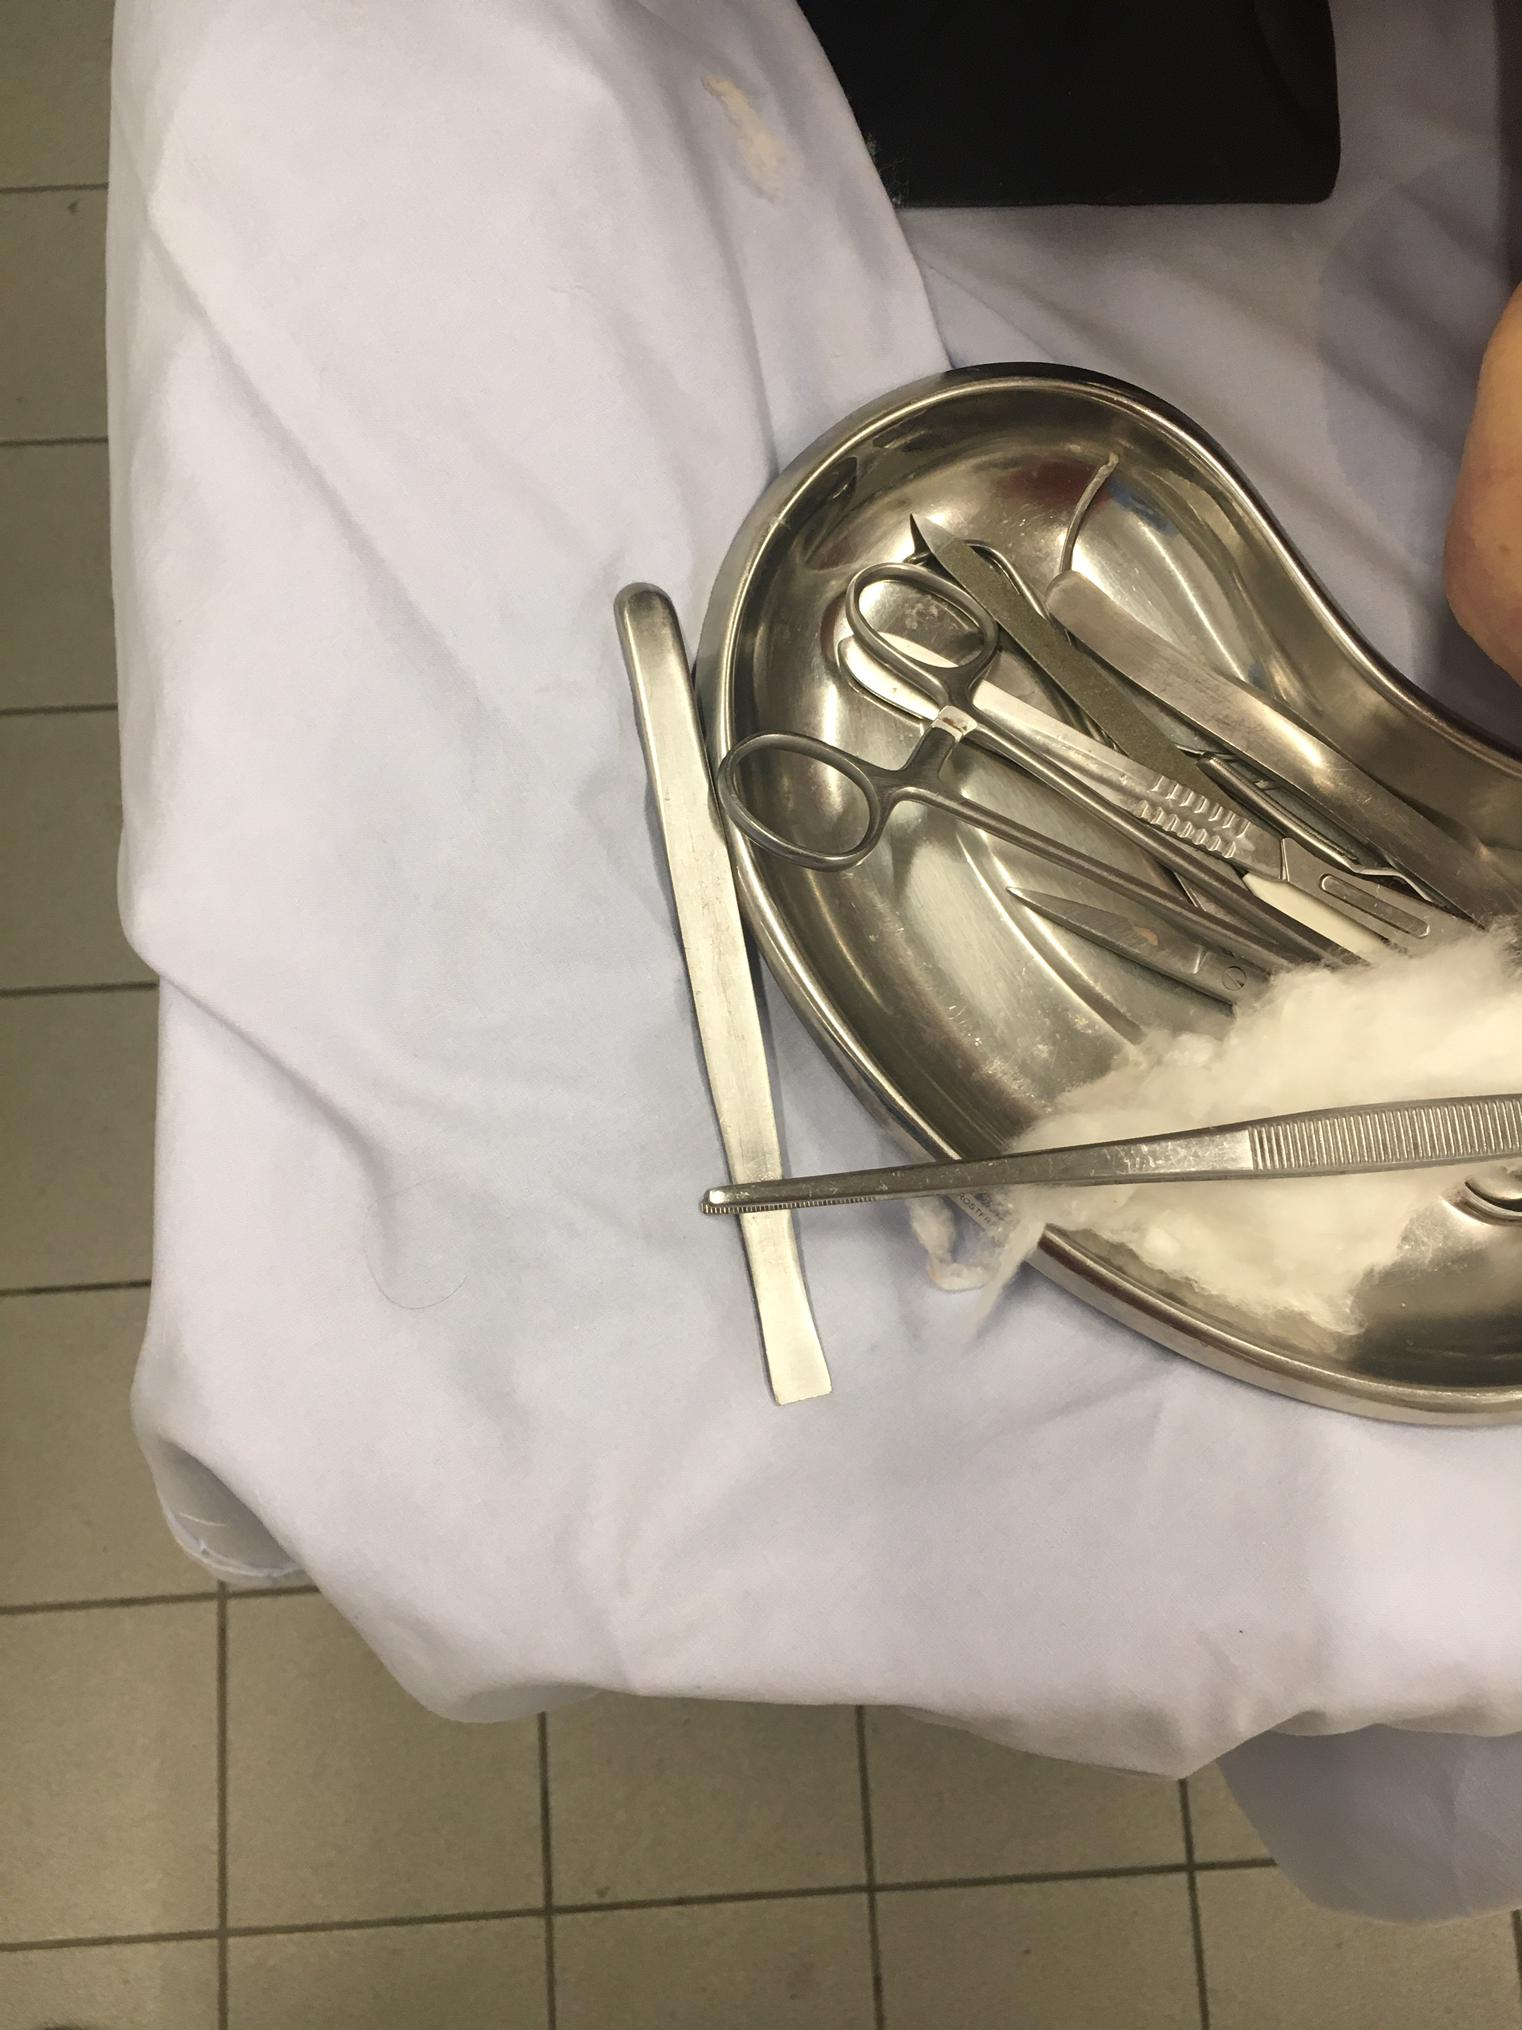 Des instruments chirurgicaux (image d'illustration).